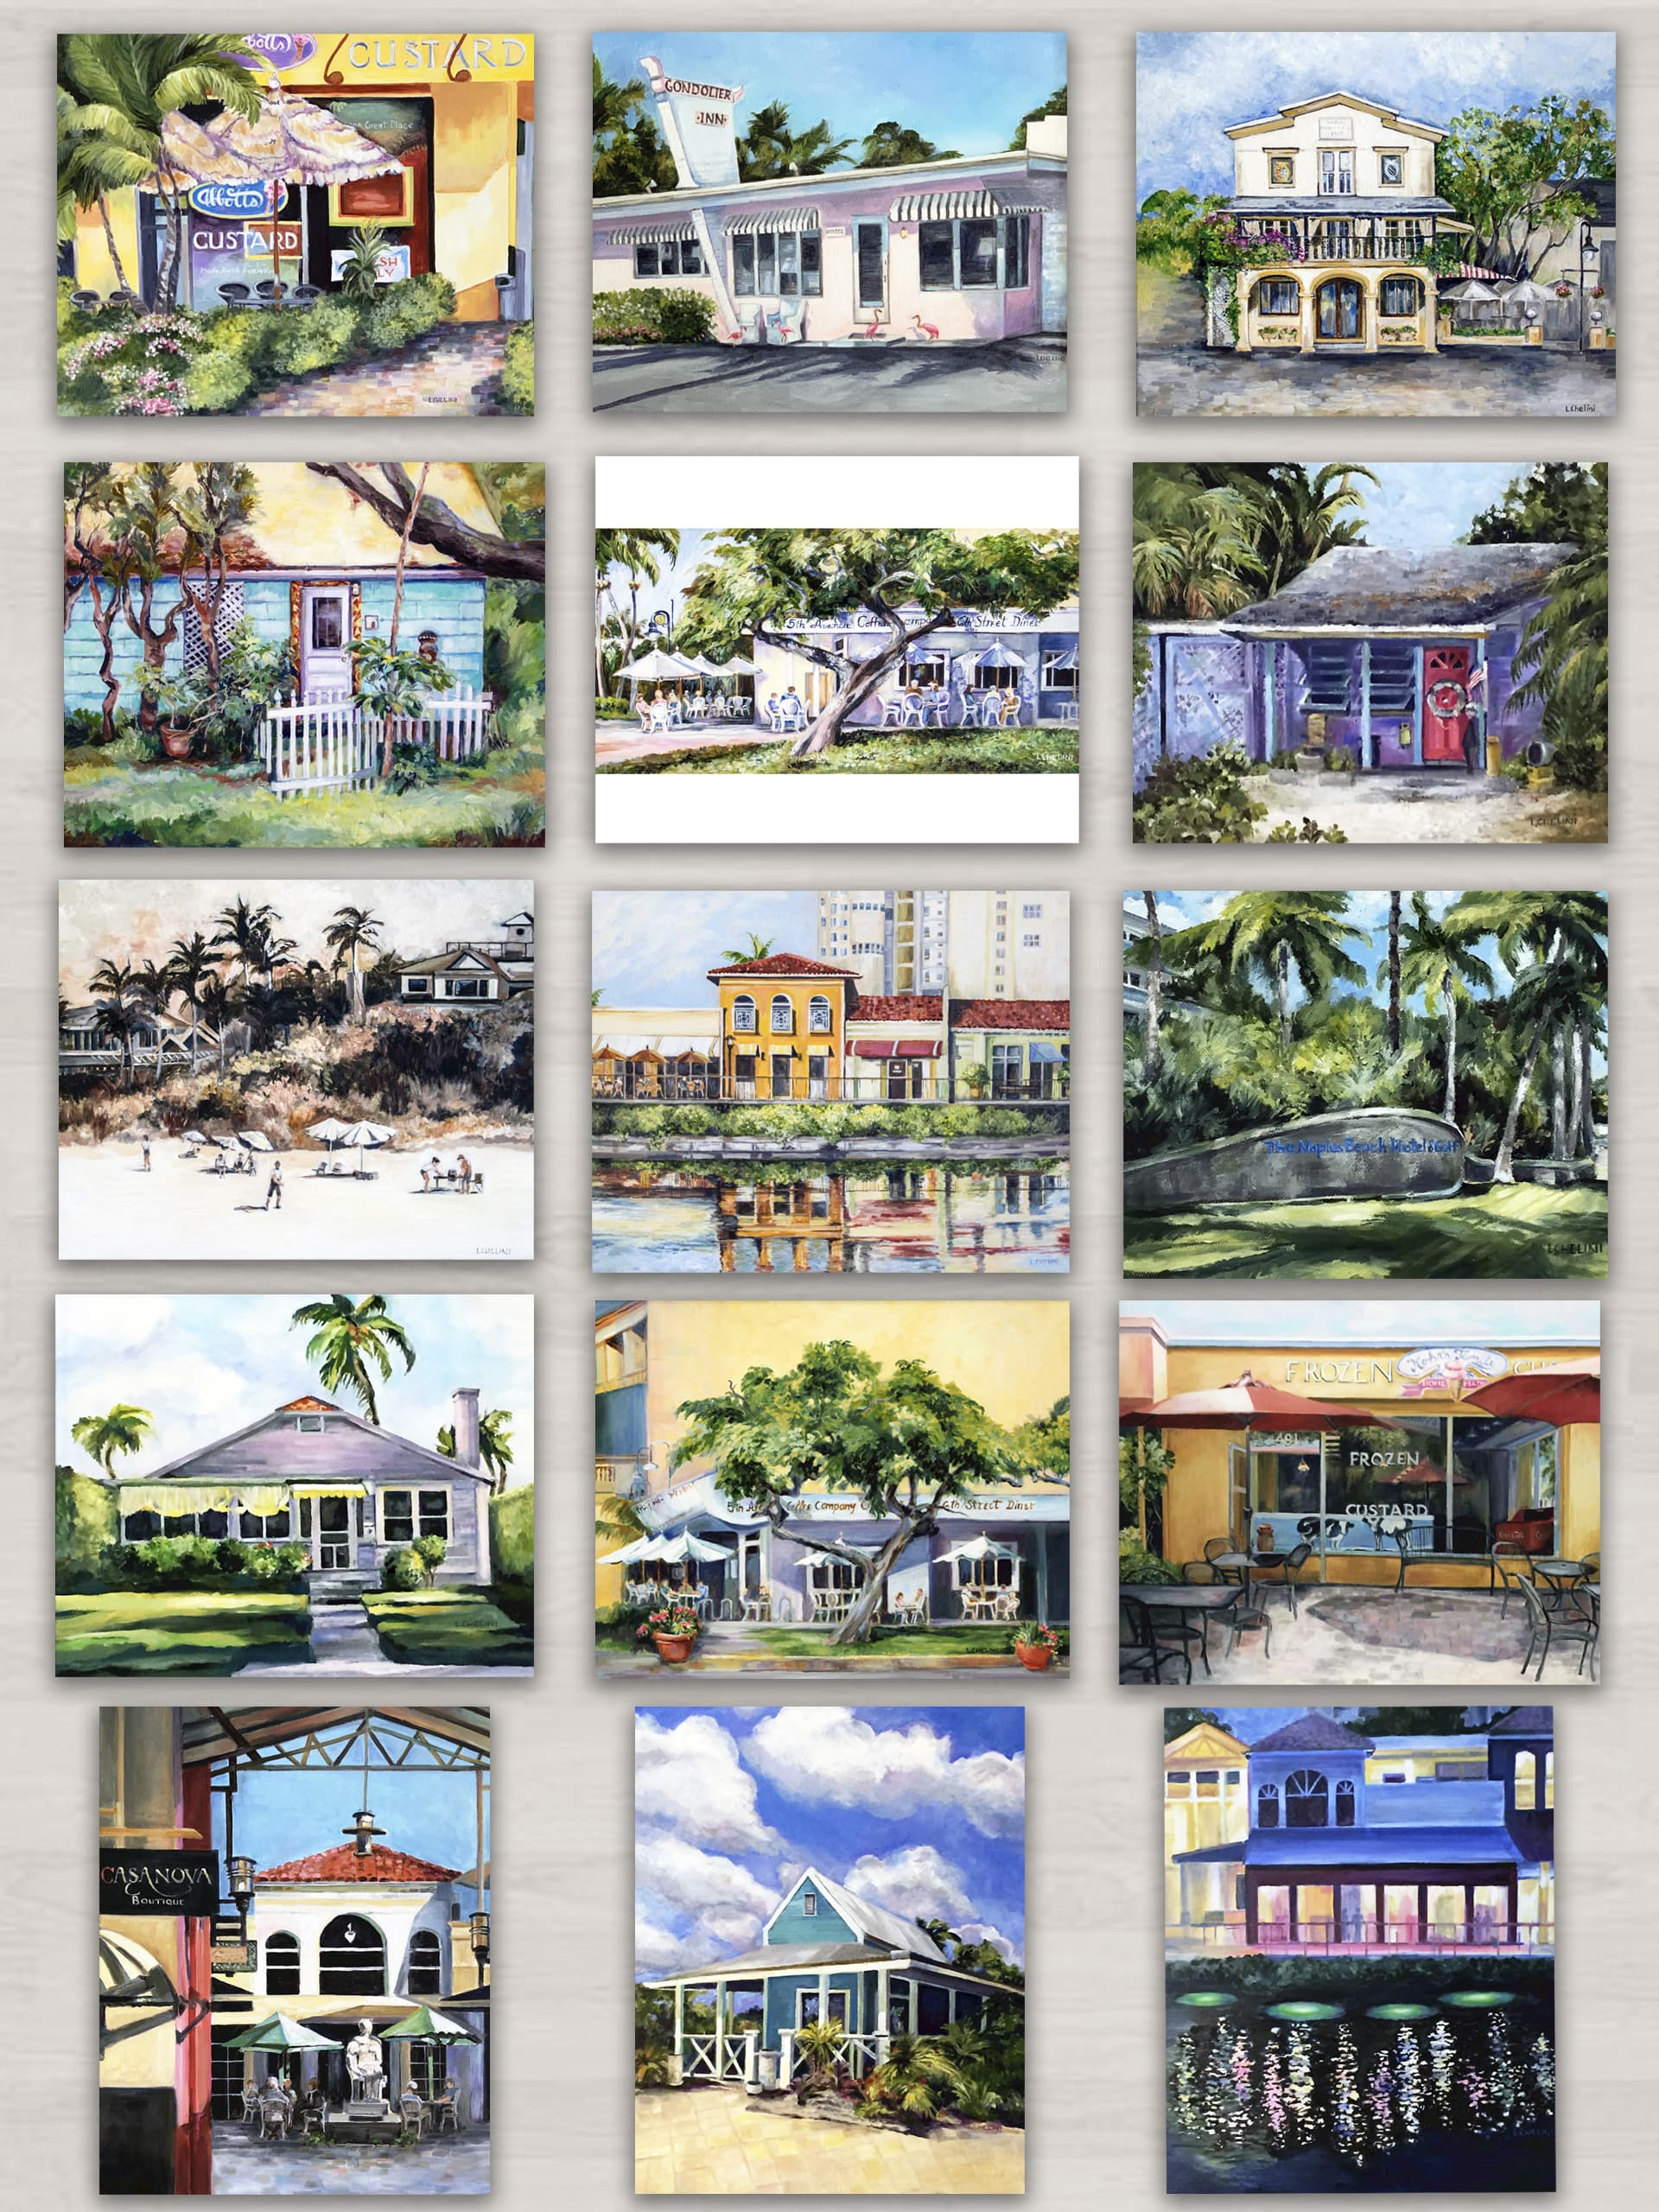 prints of original oils by laura chelini, naples florida, series 3